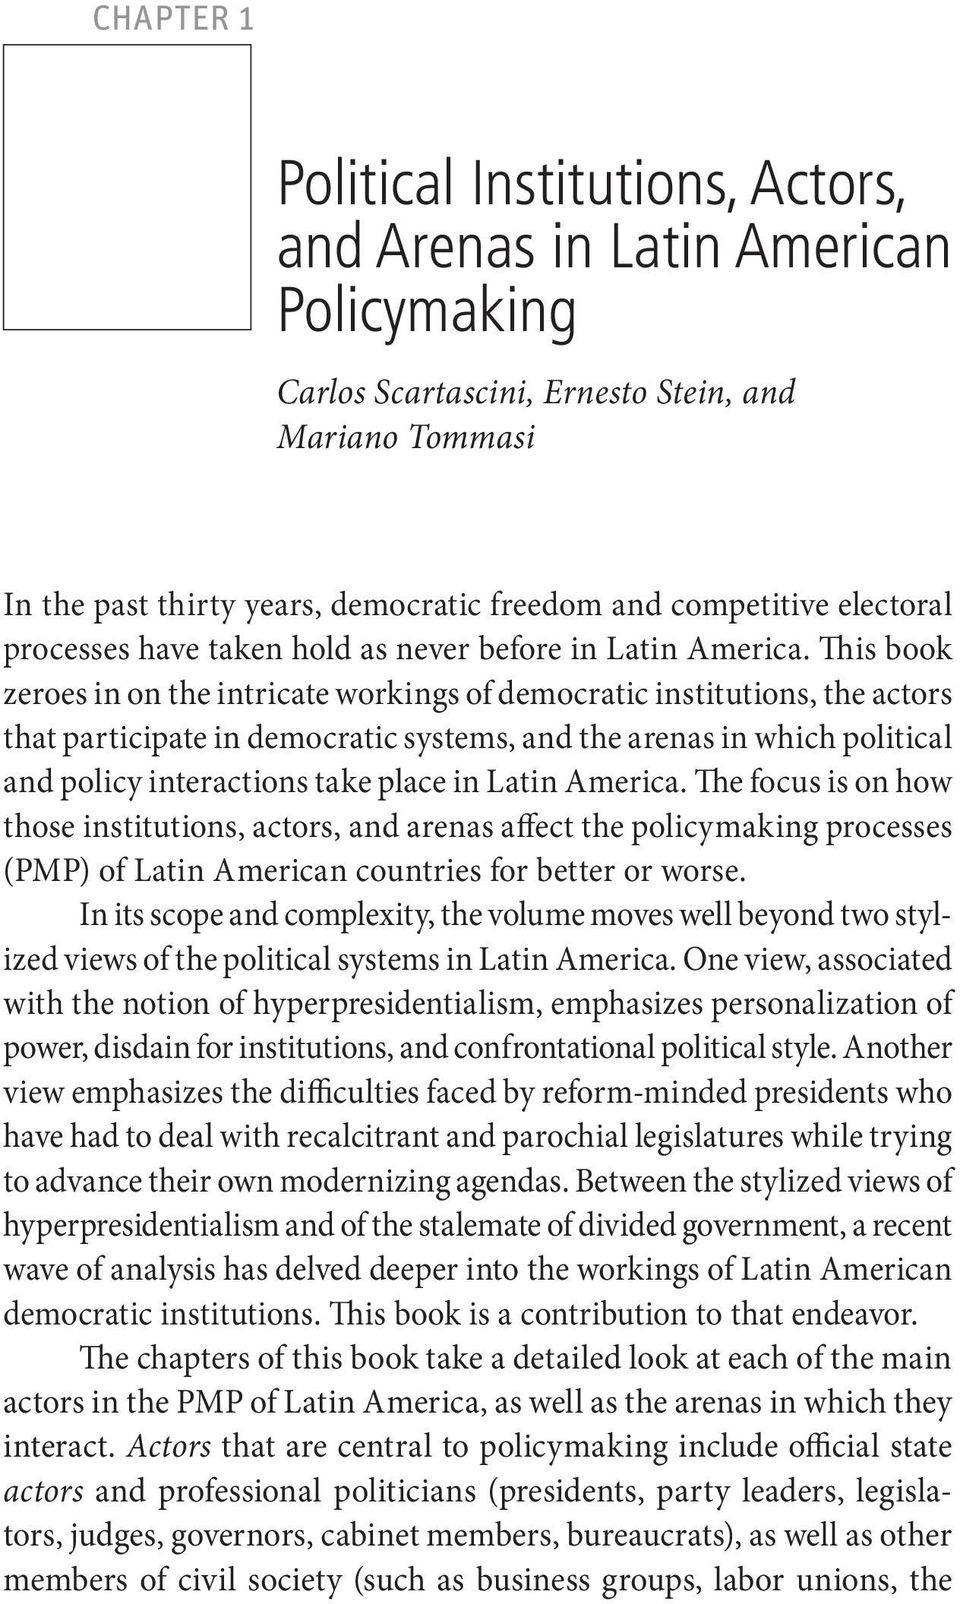 This book zeroes in on the intricate workings of democratic institutions, the actors that participate in democratic systems, and the arenas in which political and policy interactions take place in